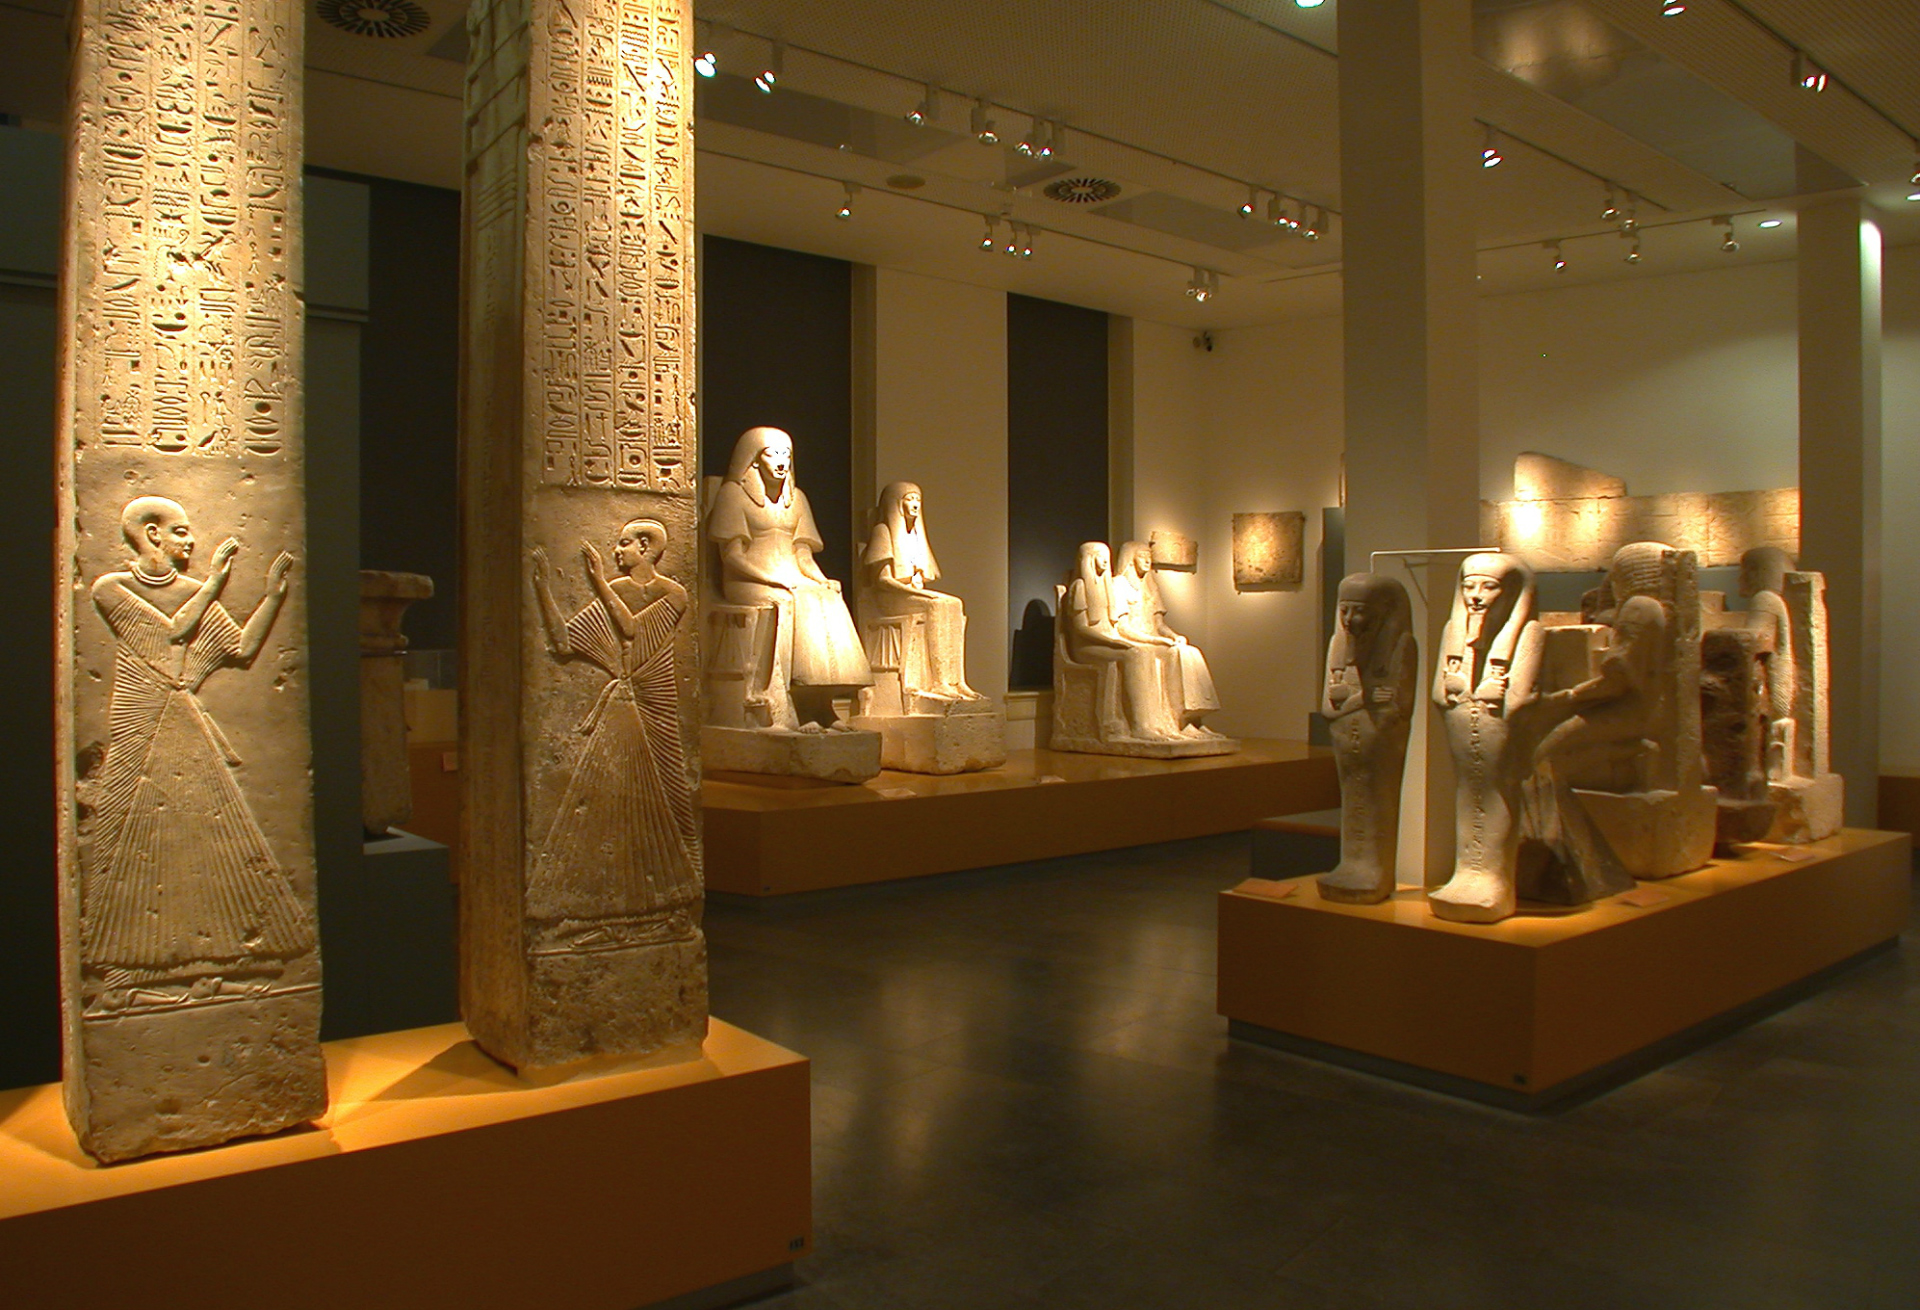 Prestigious Museums: National Museum of Ancient Arts museums in portugal Museums in Portugal: See a Selection of Some of the Most Prestigious See a Selection of Some of the Most Prestigious Museums in Portugal 5 3